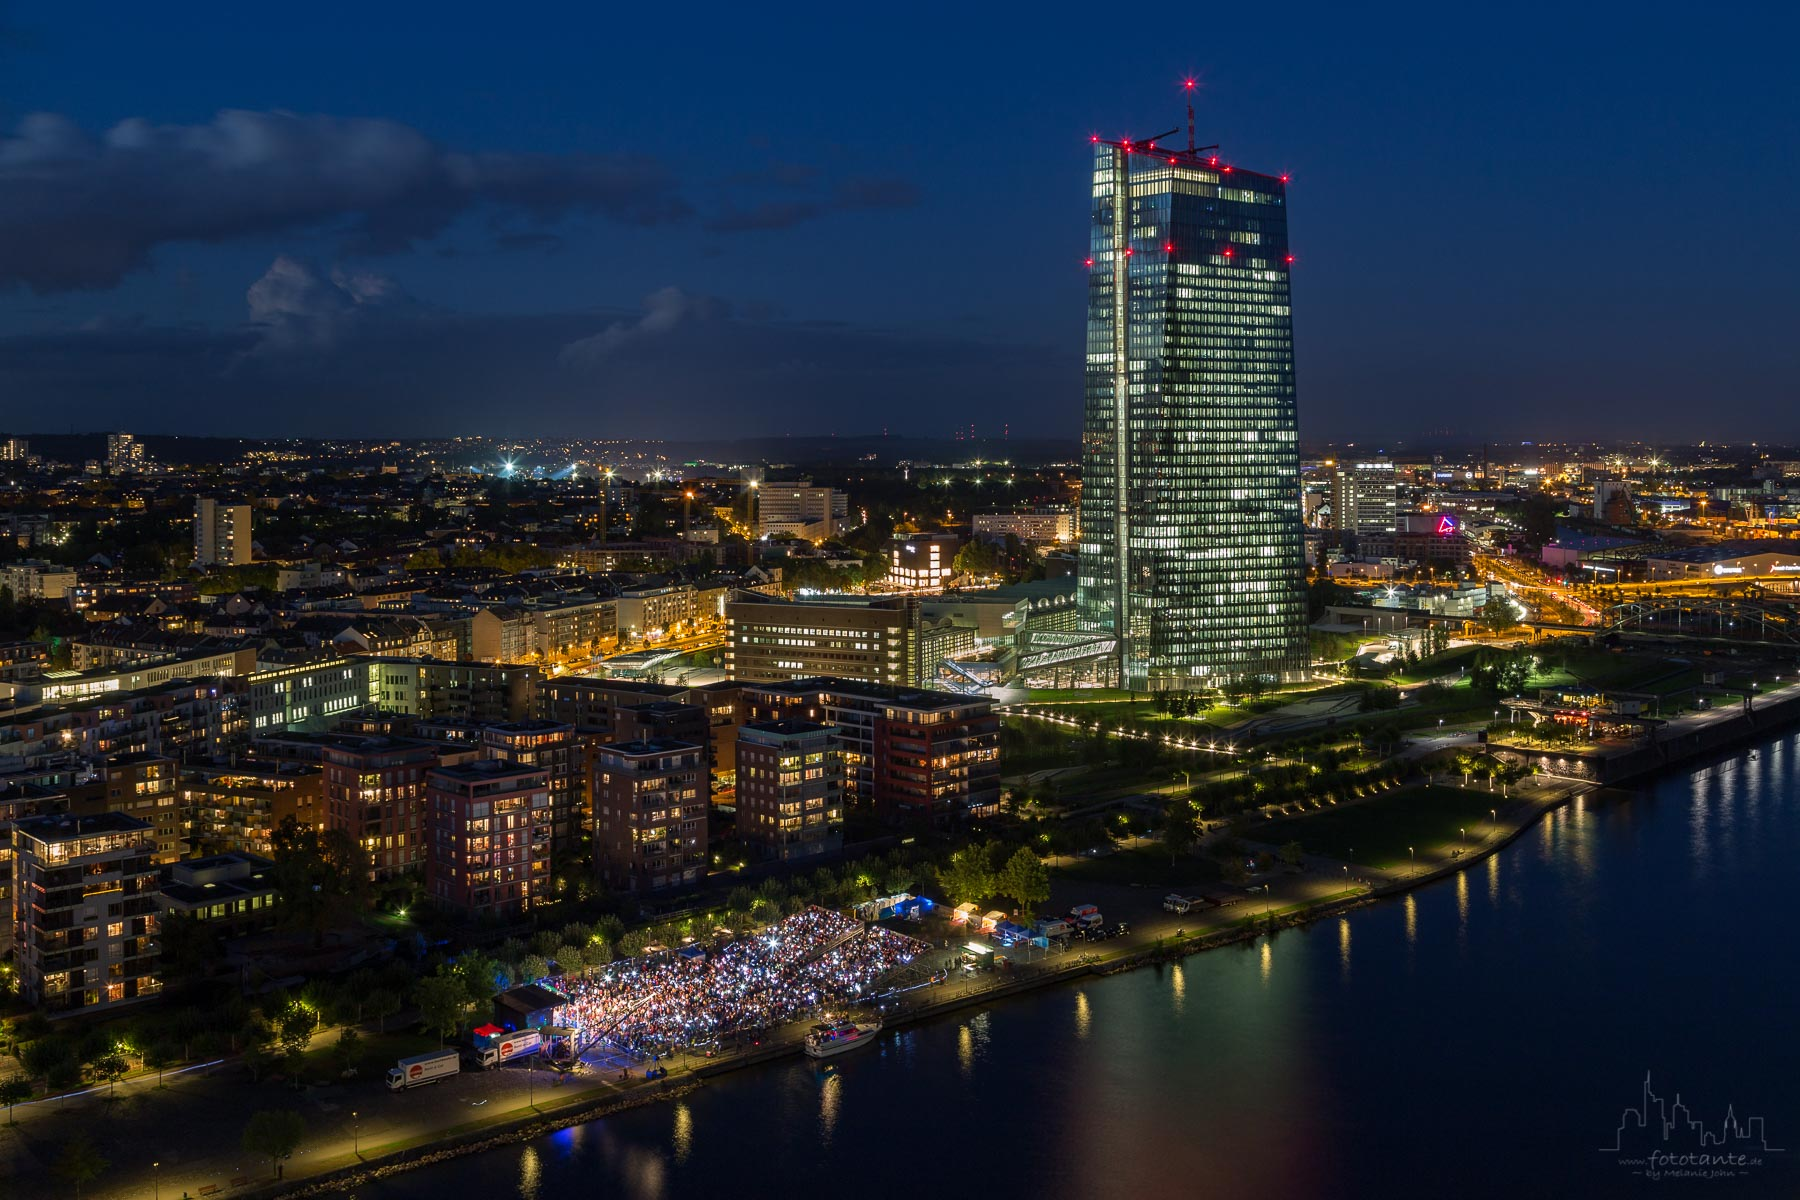 View from Main Plaza (Lindner Hotel) to EZB, Germany